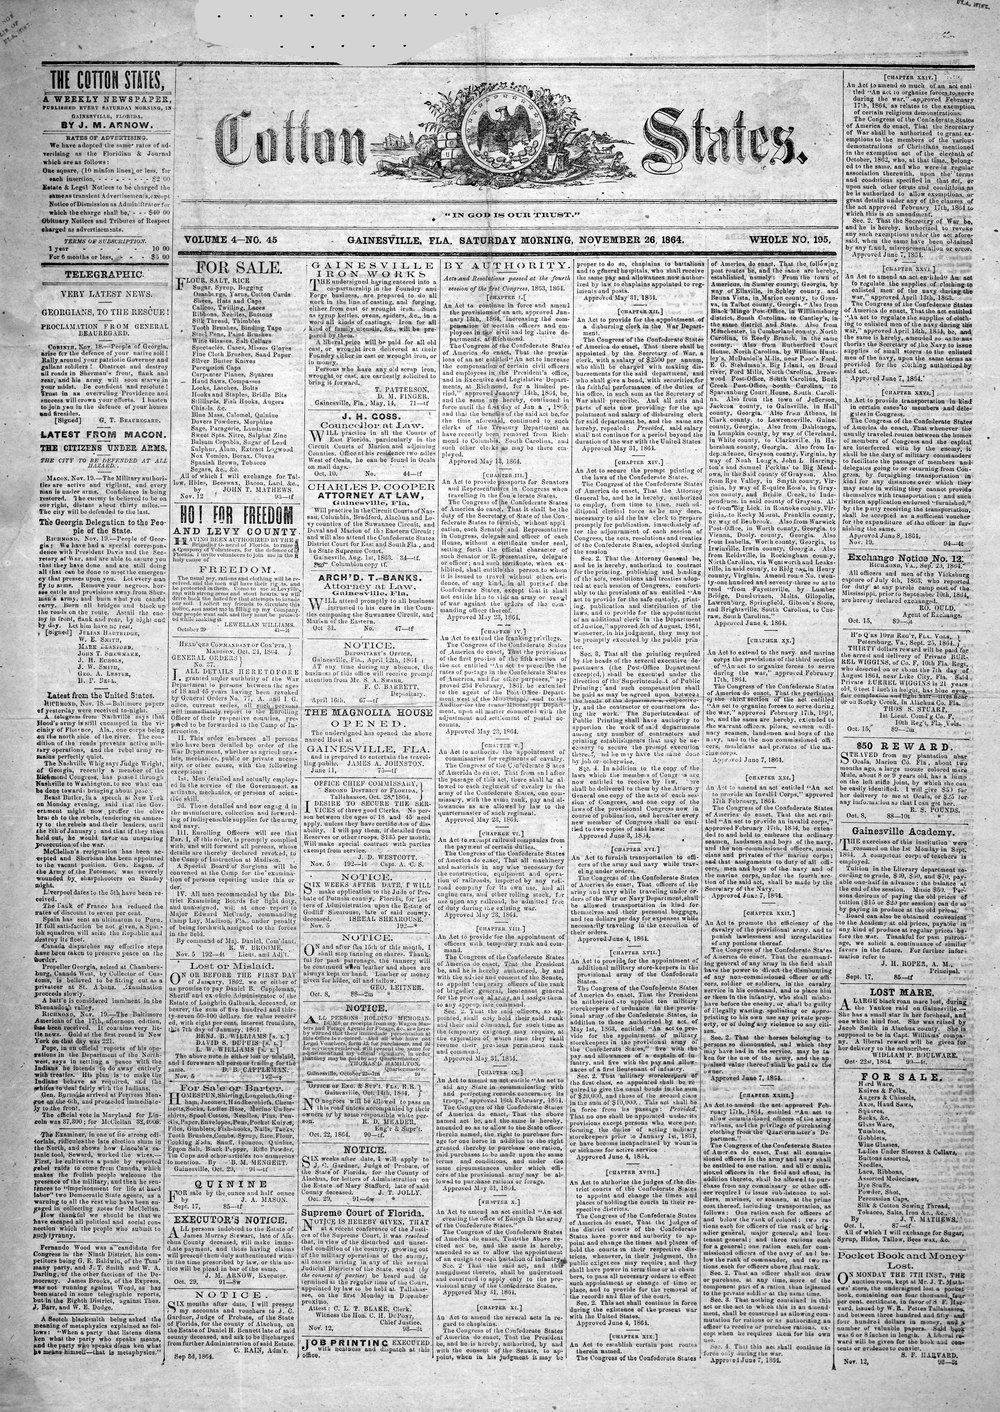 Cotton states (Micanopy, Fla.) - Page 1